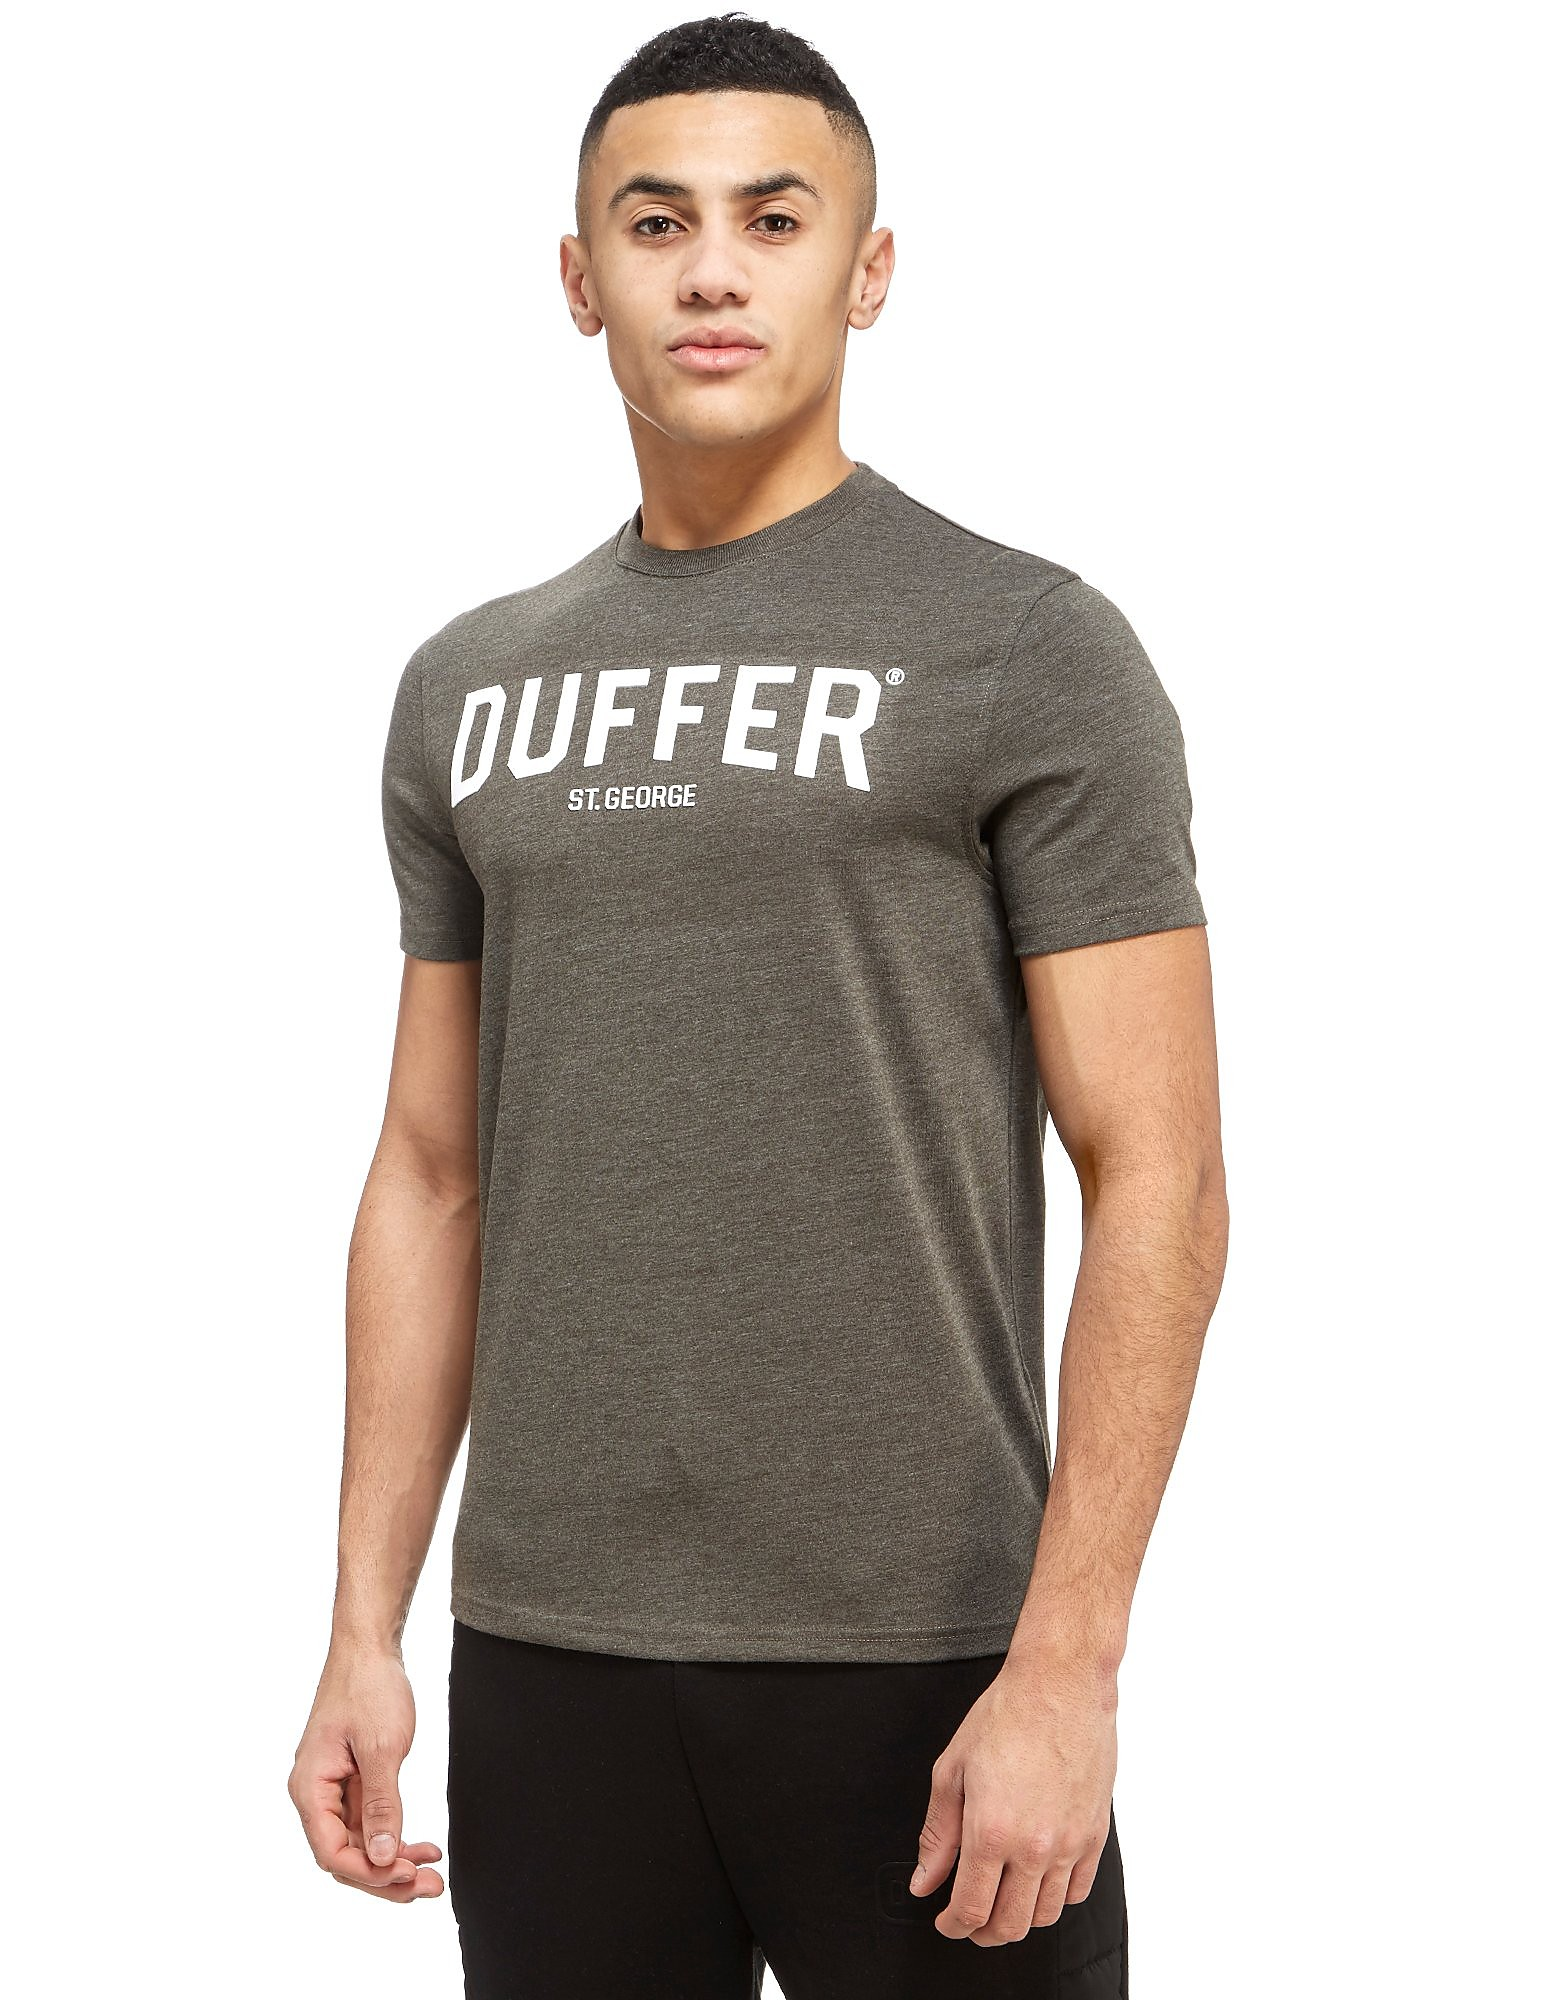 Duffer of St George Resource T-Shirt